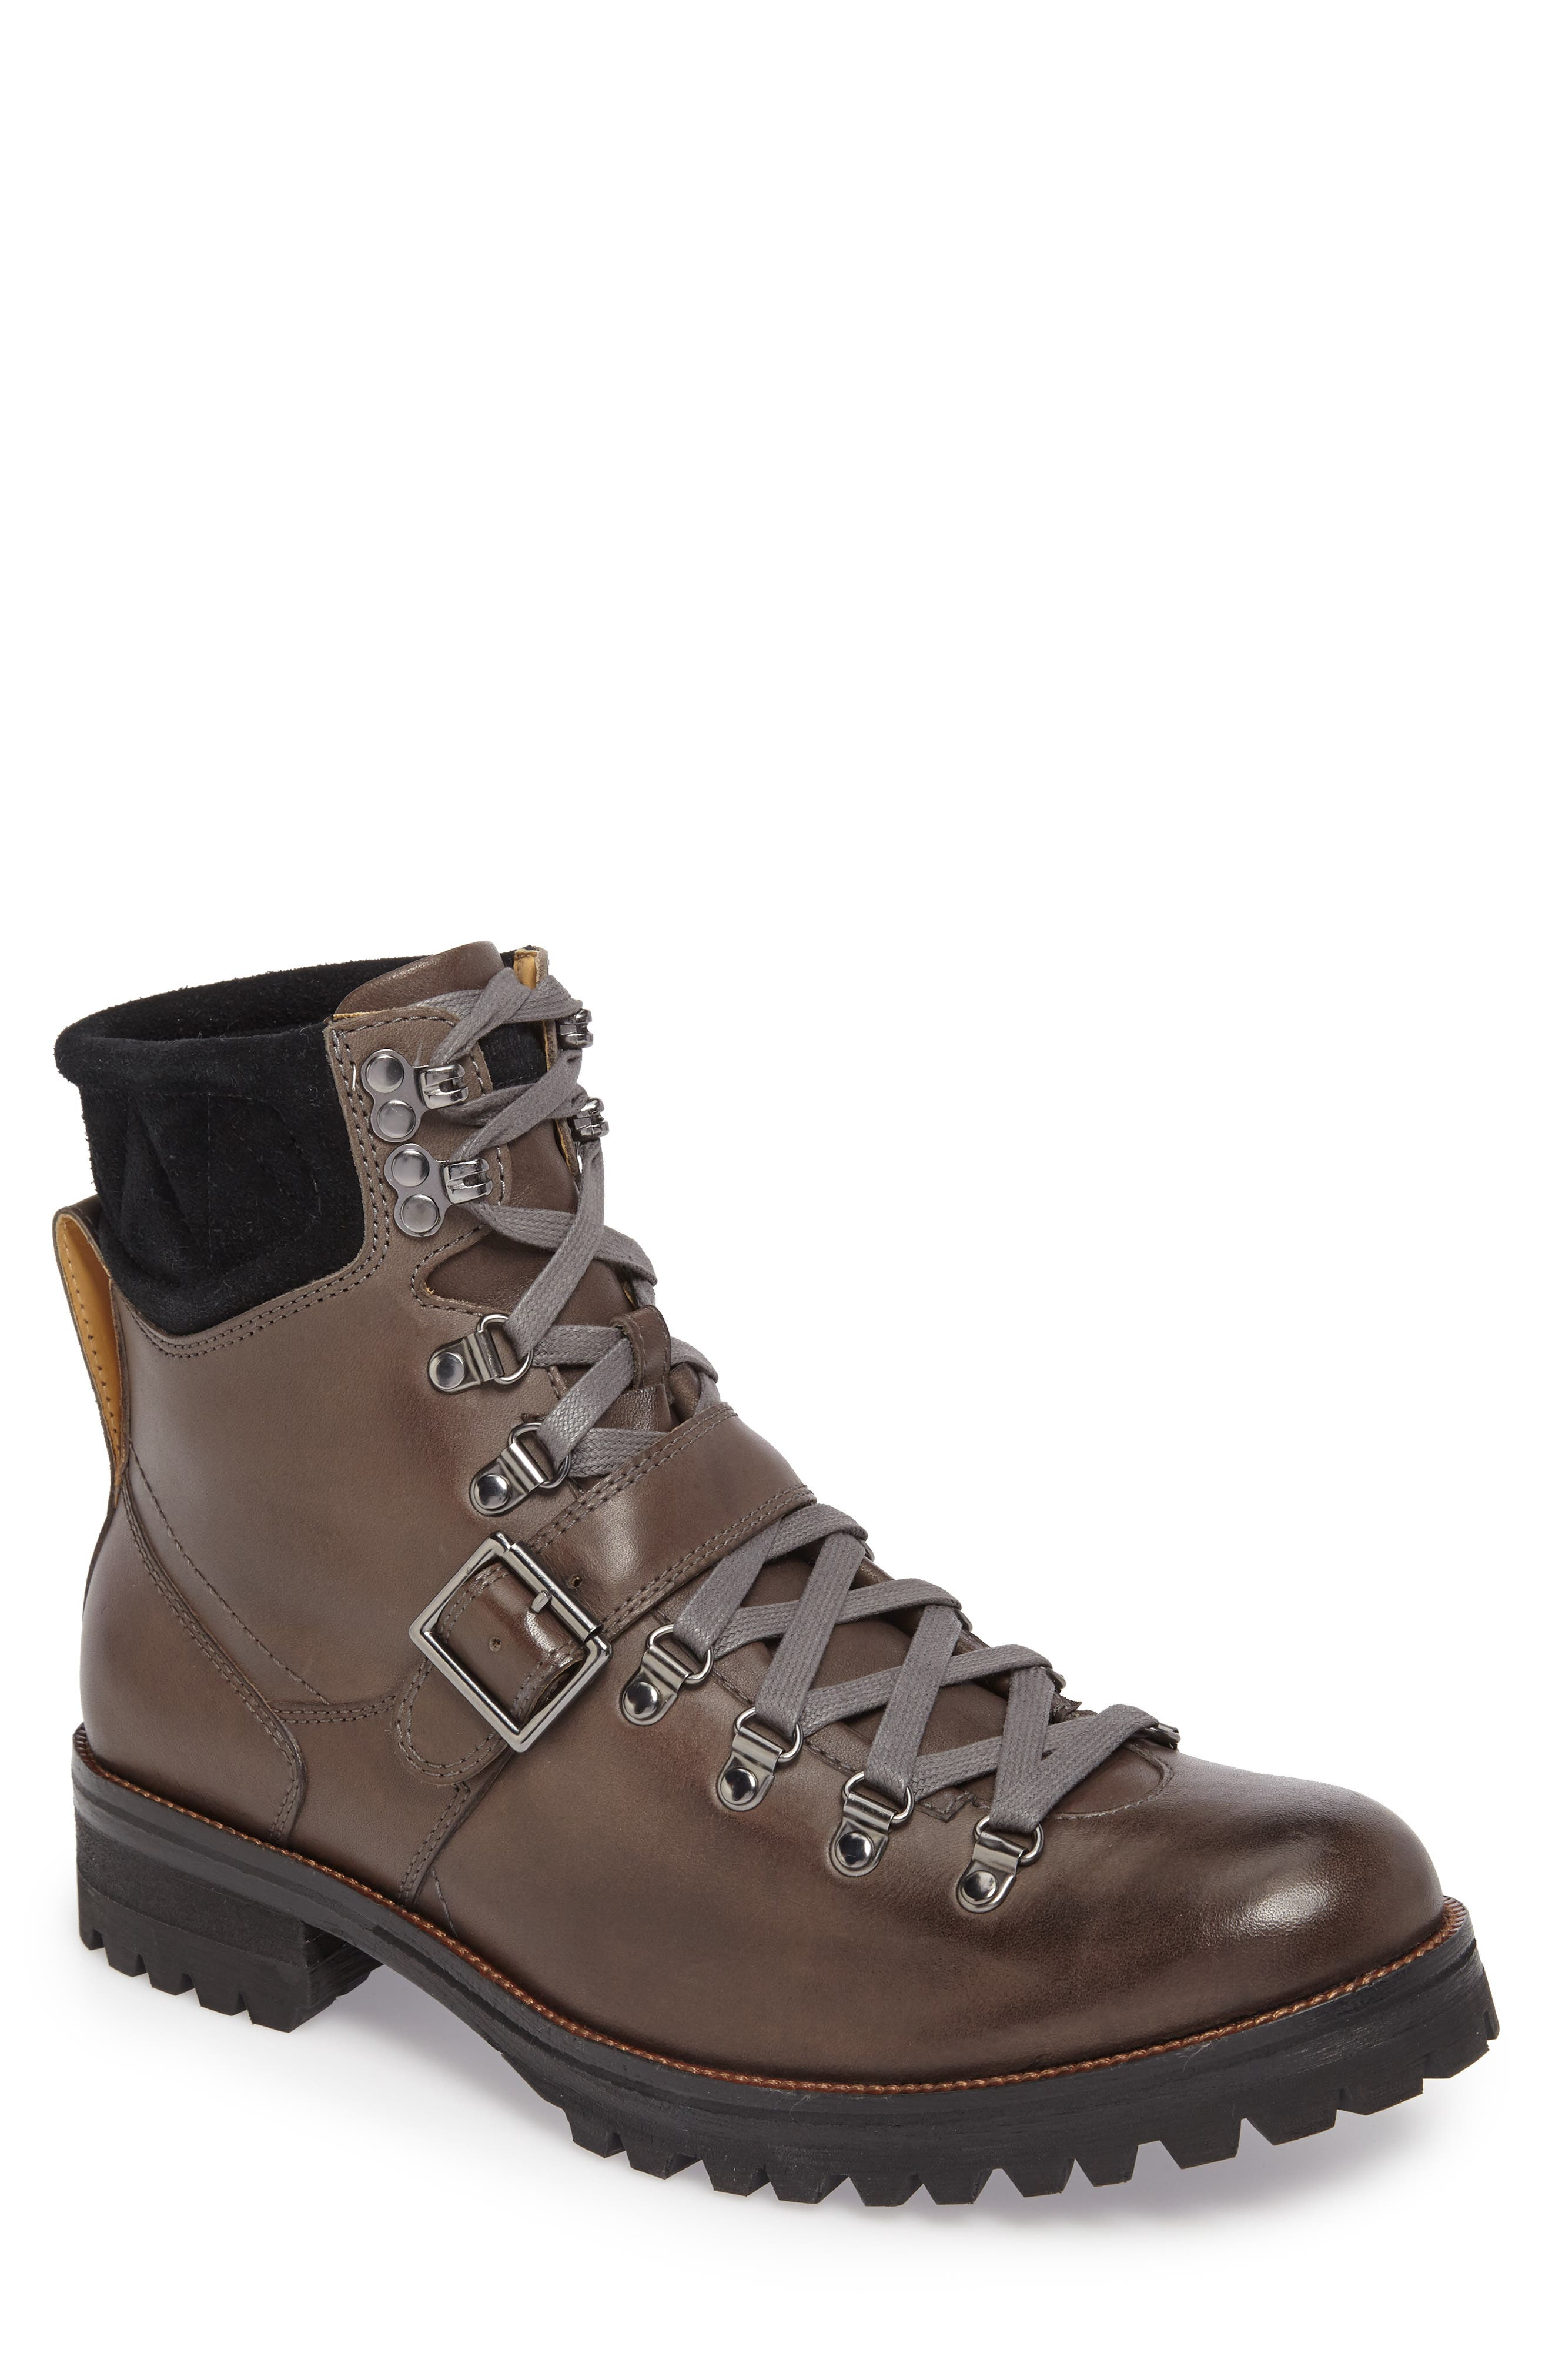 Storm Lug Hiker Boot,                             Main thumbnail 1, color,                             GREY LEATHER